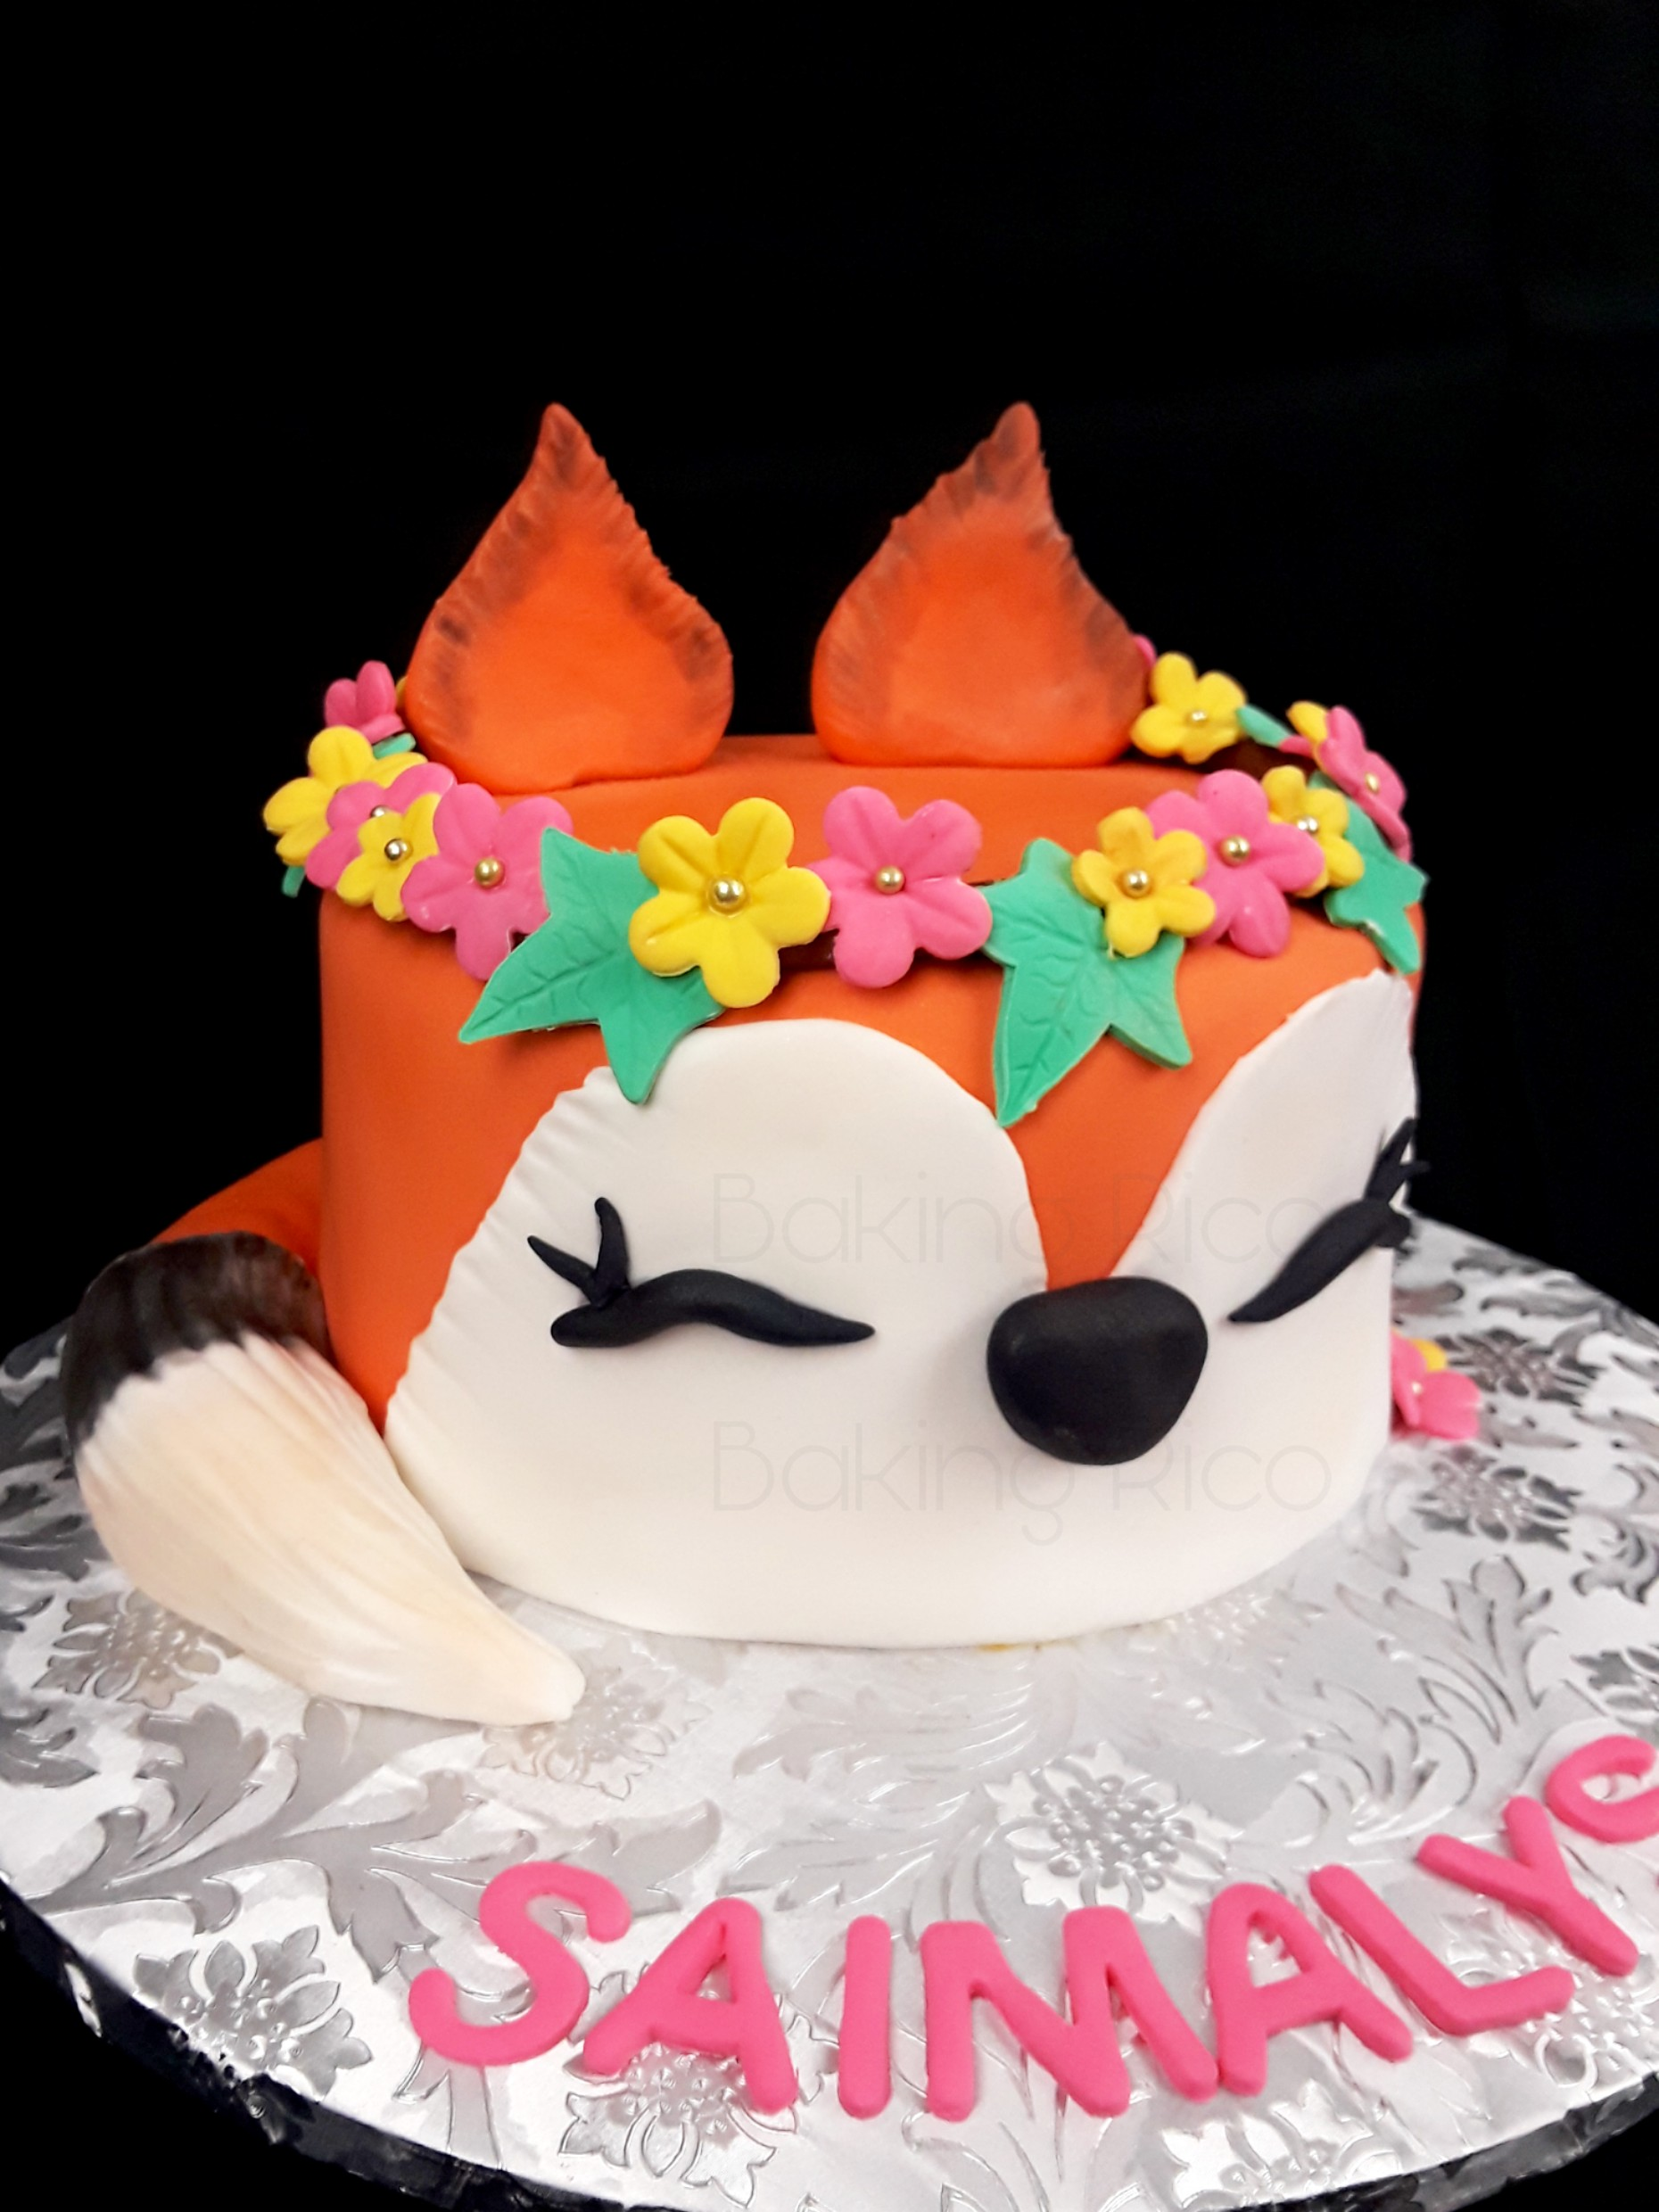 Take A Look At Our Birthday Cakes We Design Your Style Customize And Help You To Amaze Loved One Find Birthdays In Dallas Forth